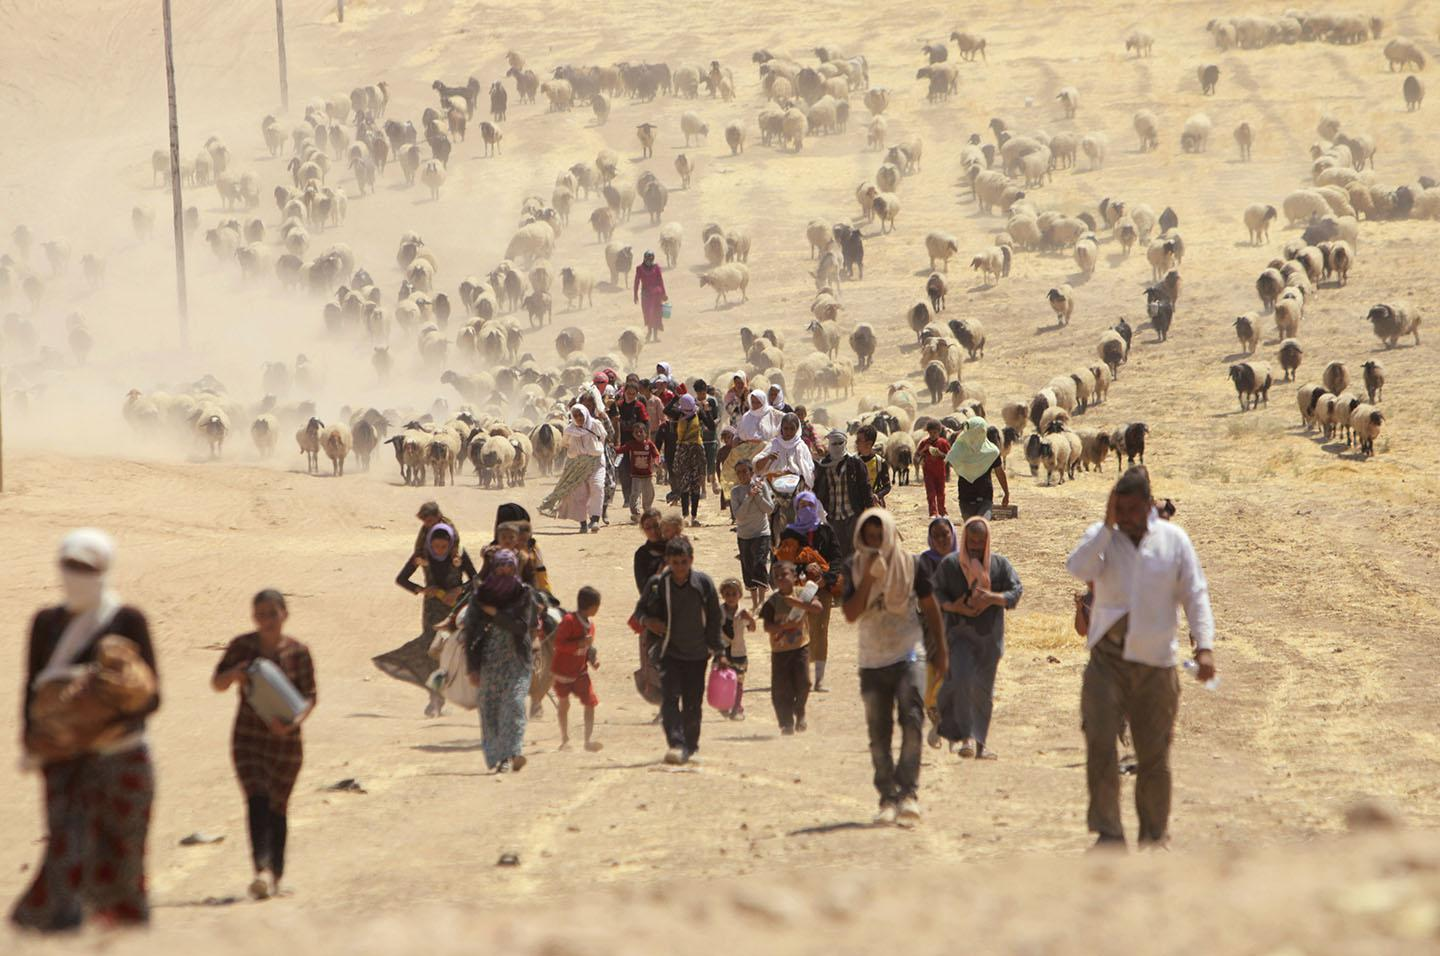 Displaced Yazidi people walk towards the Syrian border, on the outskirts of Sinjar mountain, near the Syrian border town of Elierbeh of Al-Hasakah Governorate August 10, 2014.